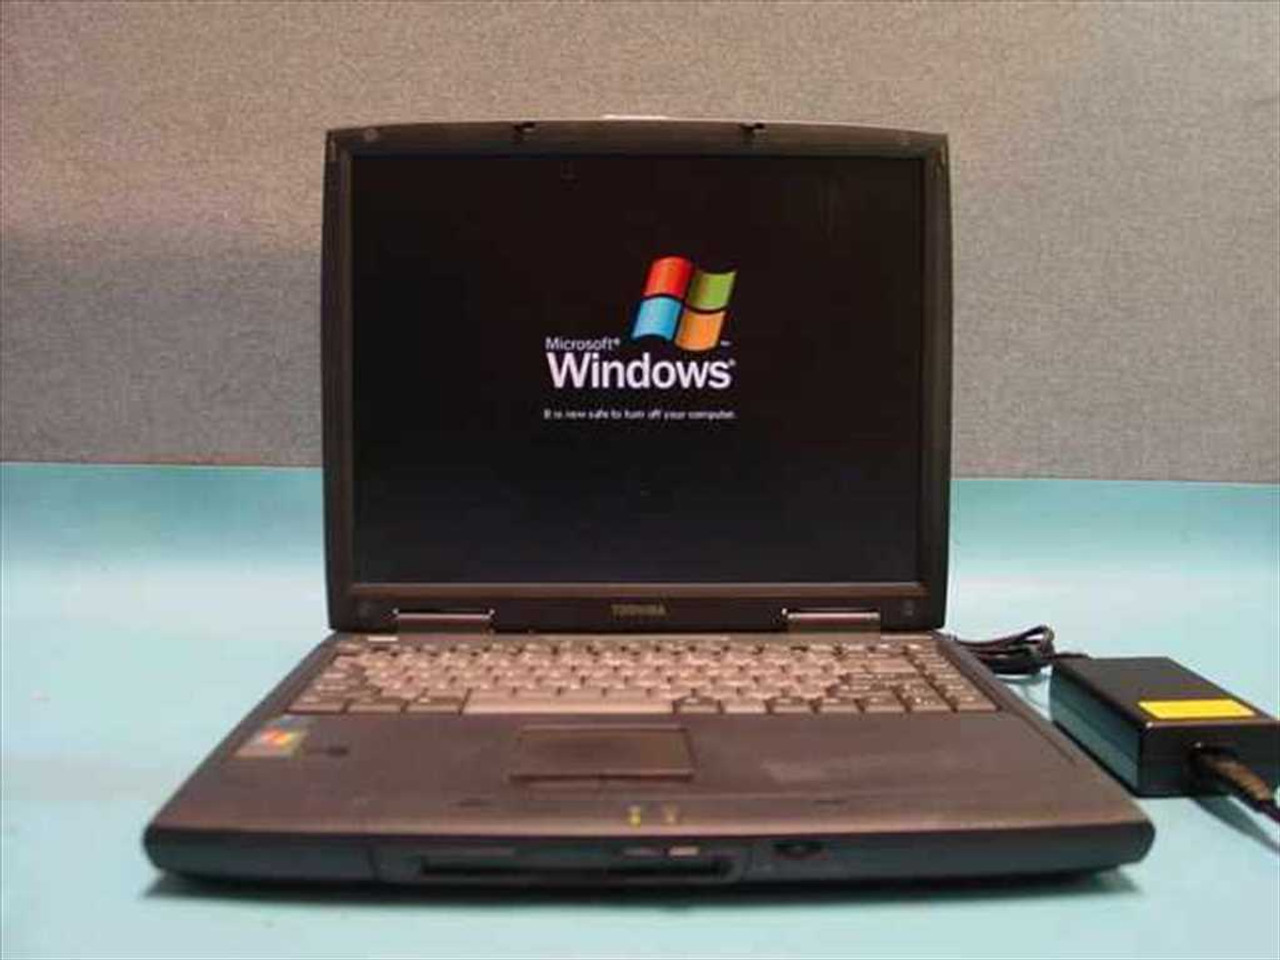 TOSHIBA SATELLITE 1115-S103 DRIVER WINDOWS XP